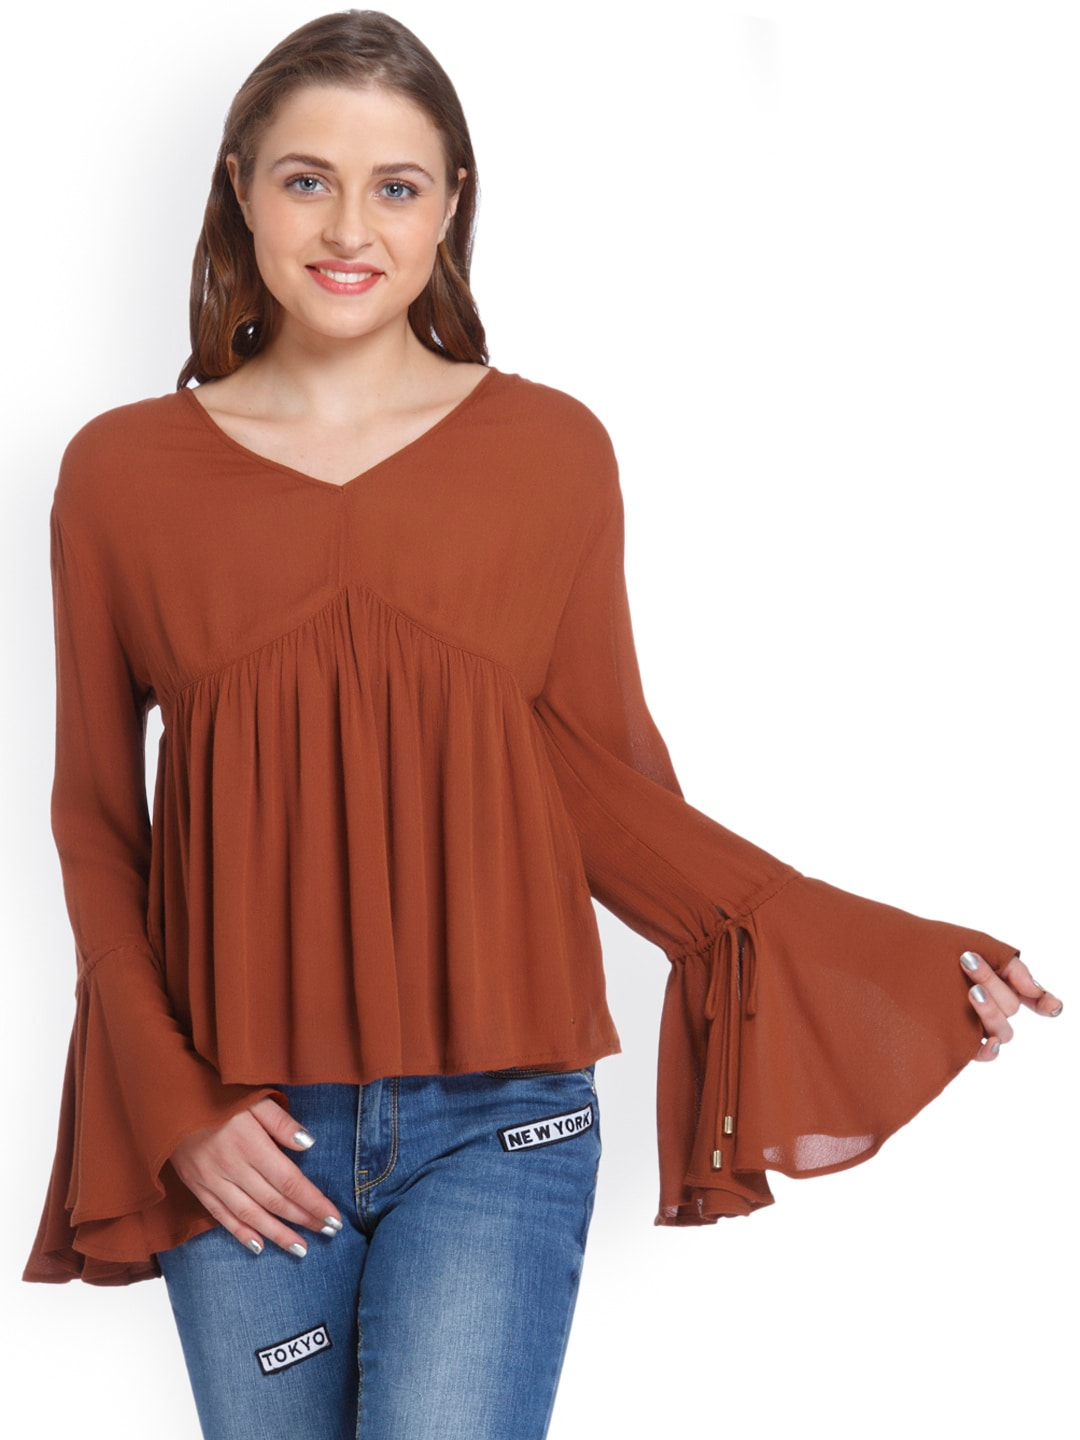 09c75805617 Gathered Only S Tops - Buy Gathered Only S Tops online in India